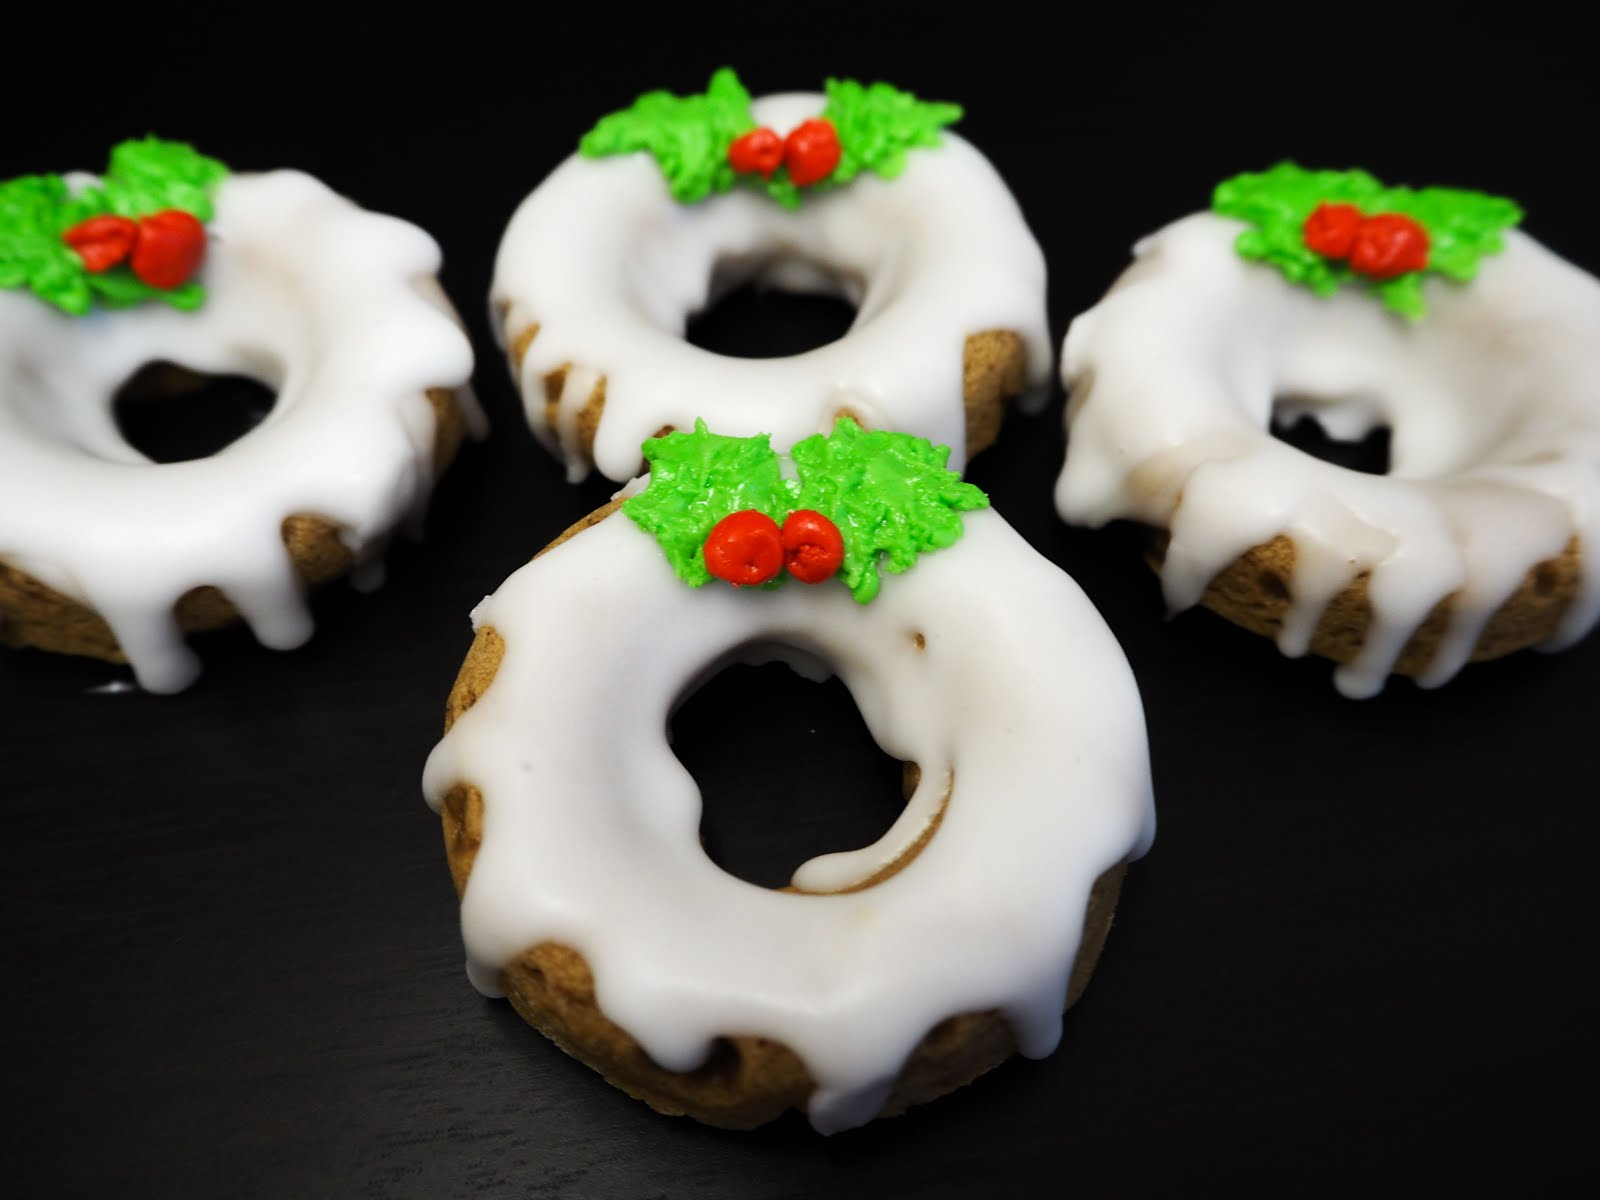 I've teamed up with Sarah Howells from The Gluten Free Blogger to create these beautiful Christmas inspired dairy and gluten free donuts.